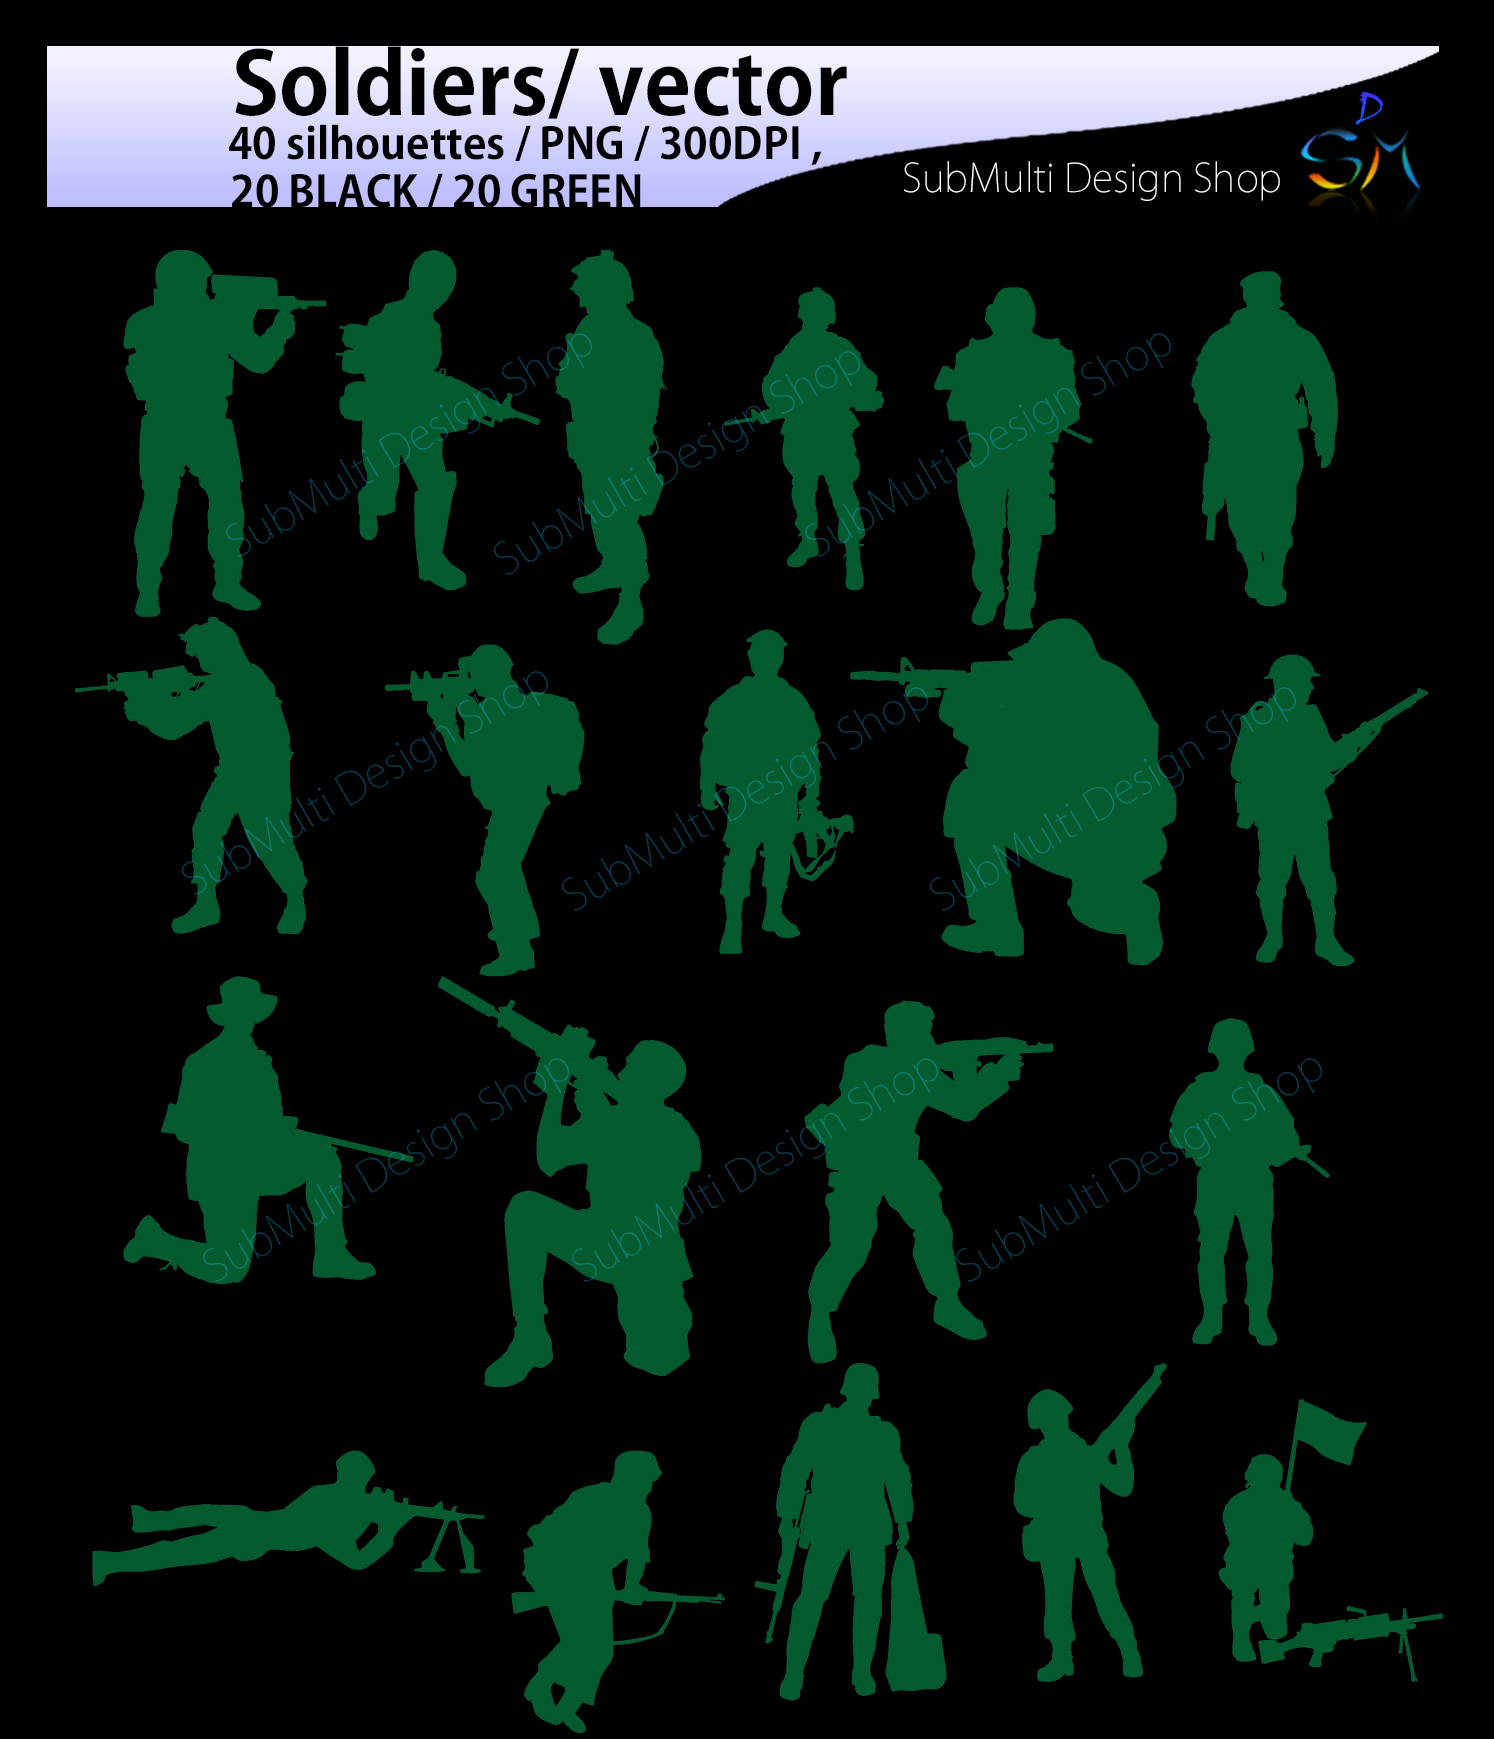 Soldiers svg / Soldiers silhouette / Hight Quality / Soldiers printable digital clipart / black and green / Army/ vector / PNG / SVG / EPS example image 3